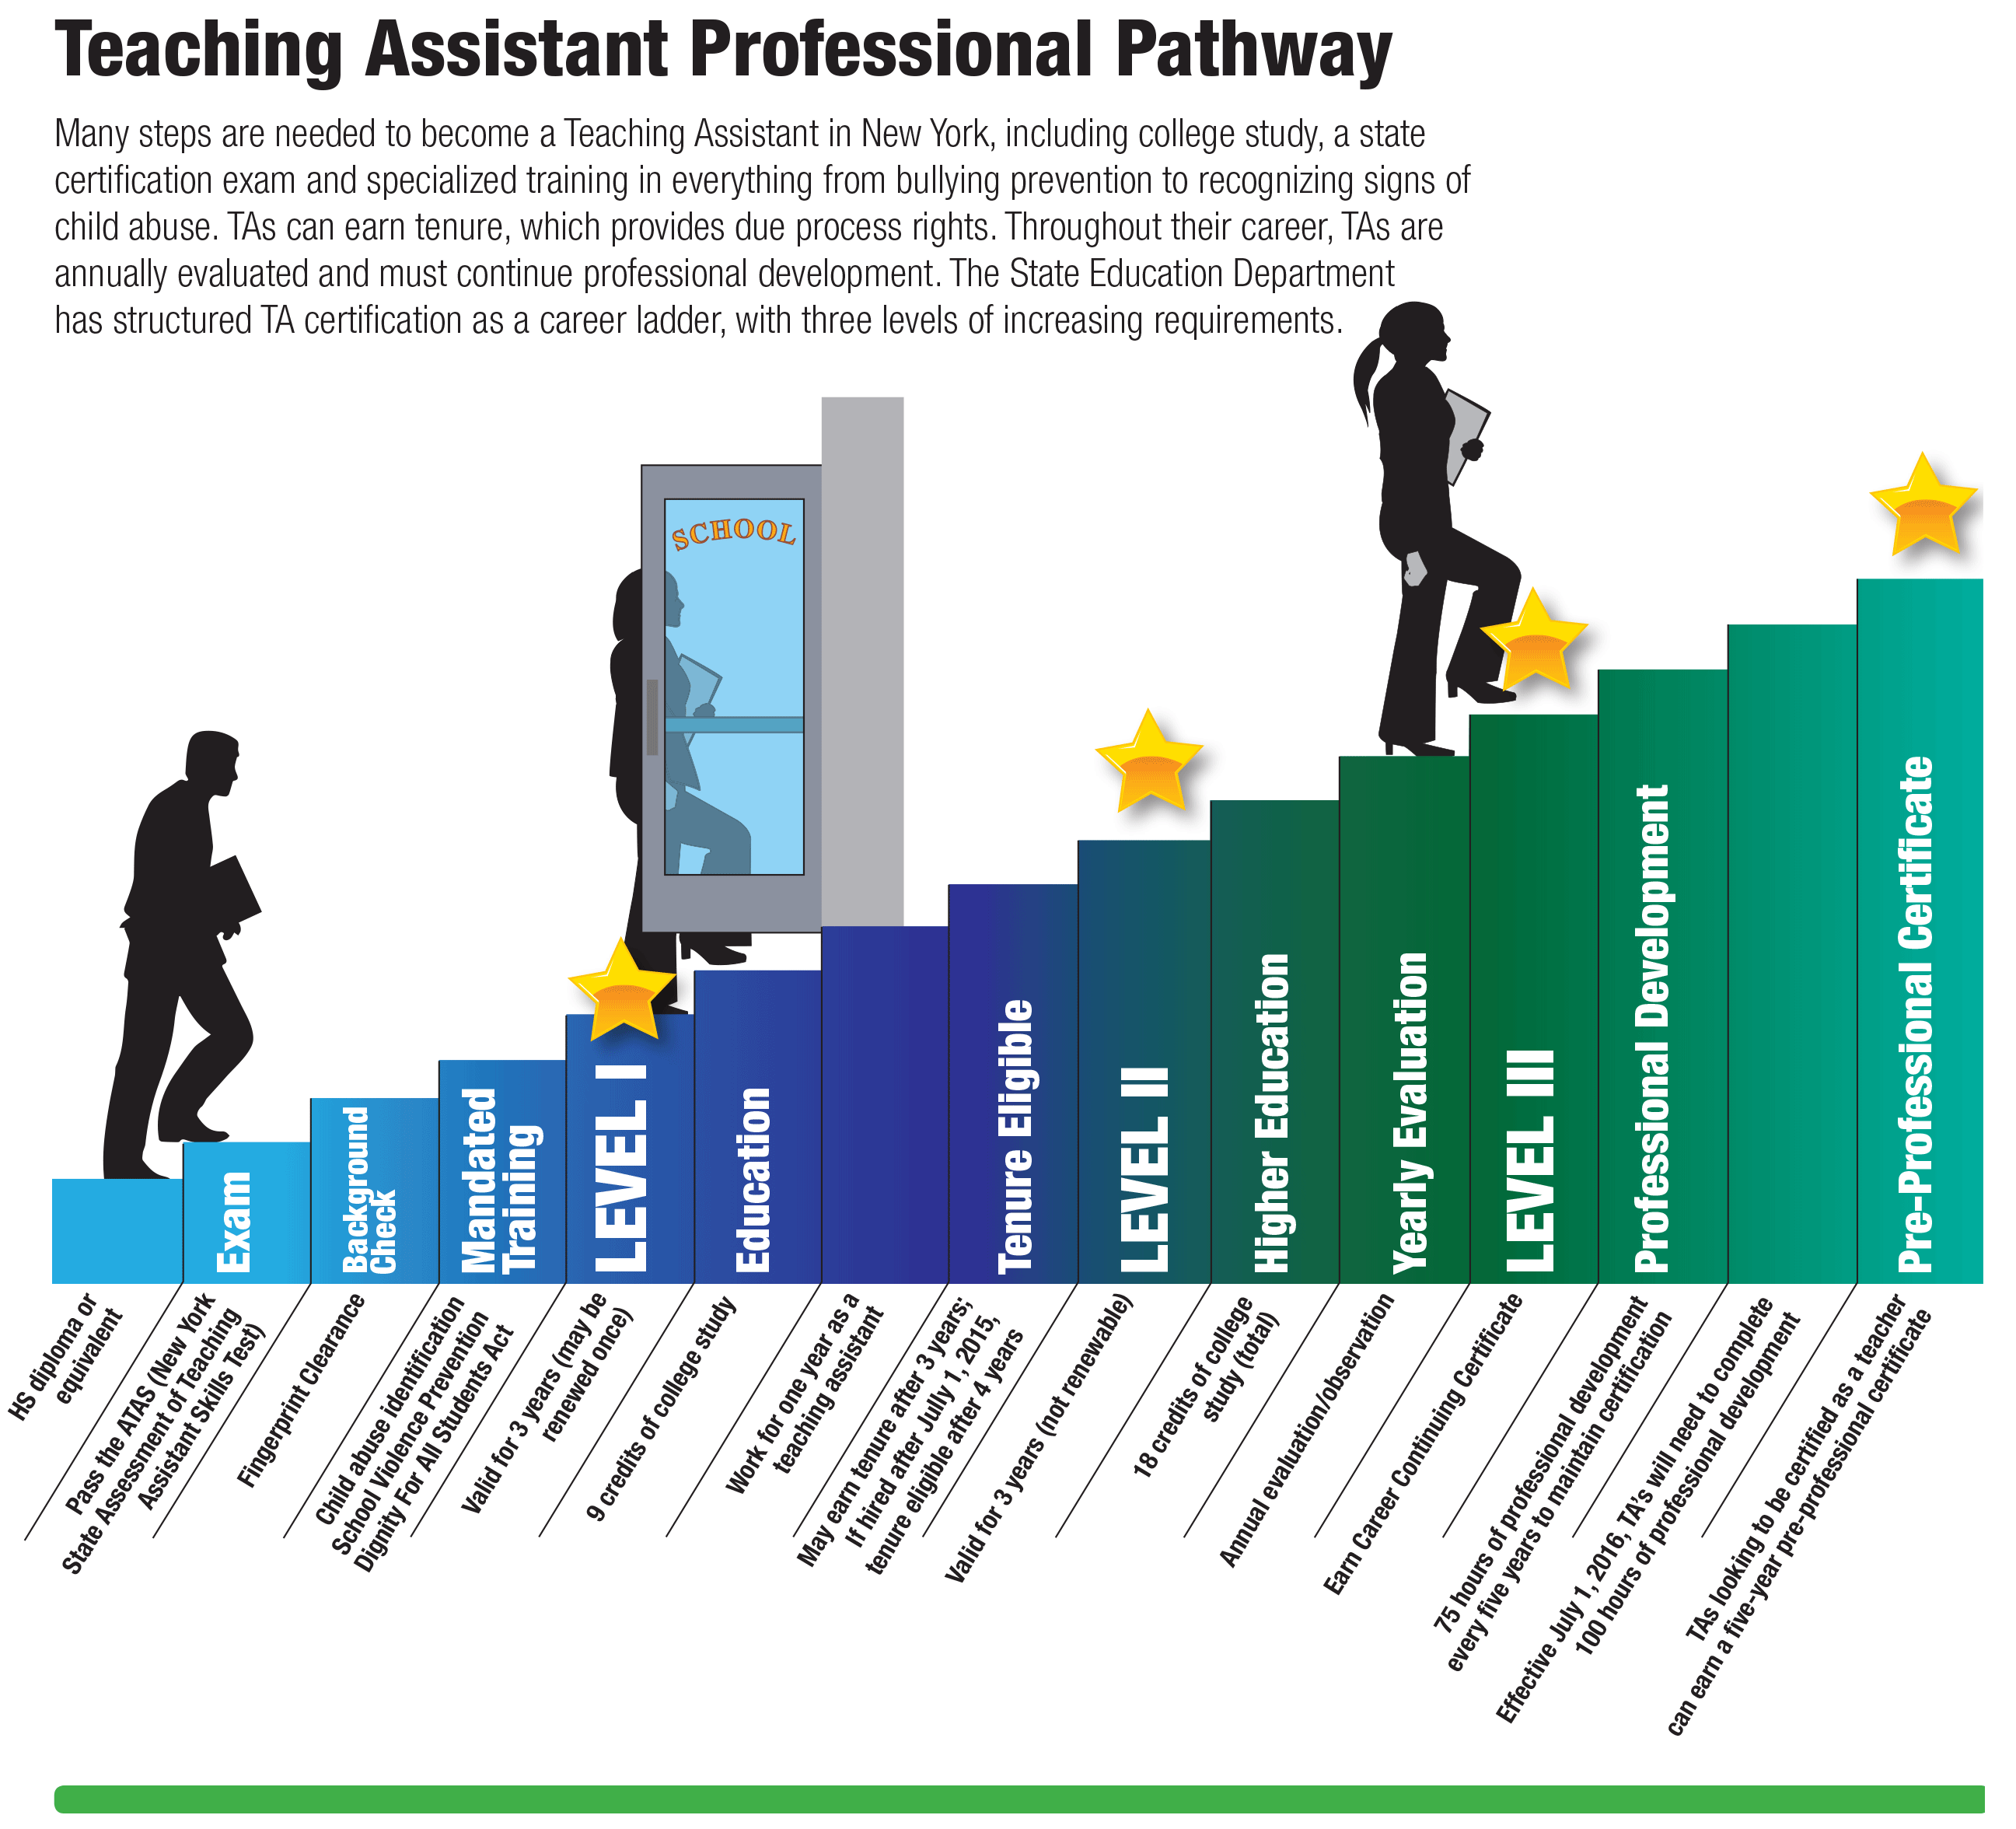 What is a Teaching Assistant's Professional Pathway? | NYSUT.org